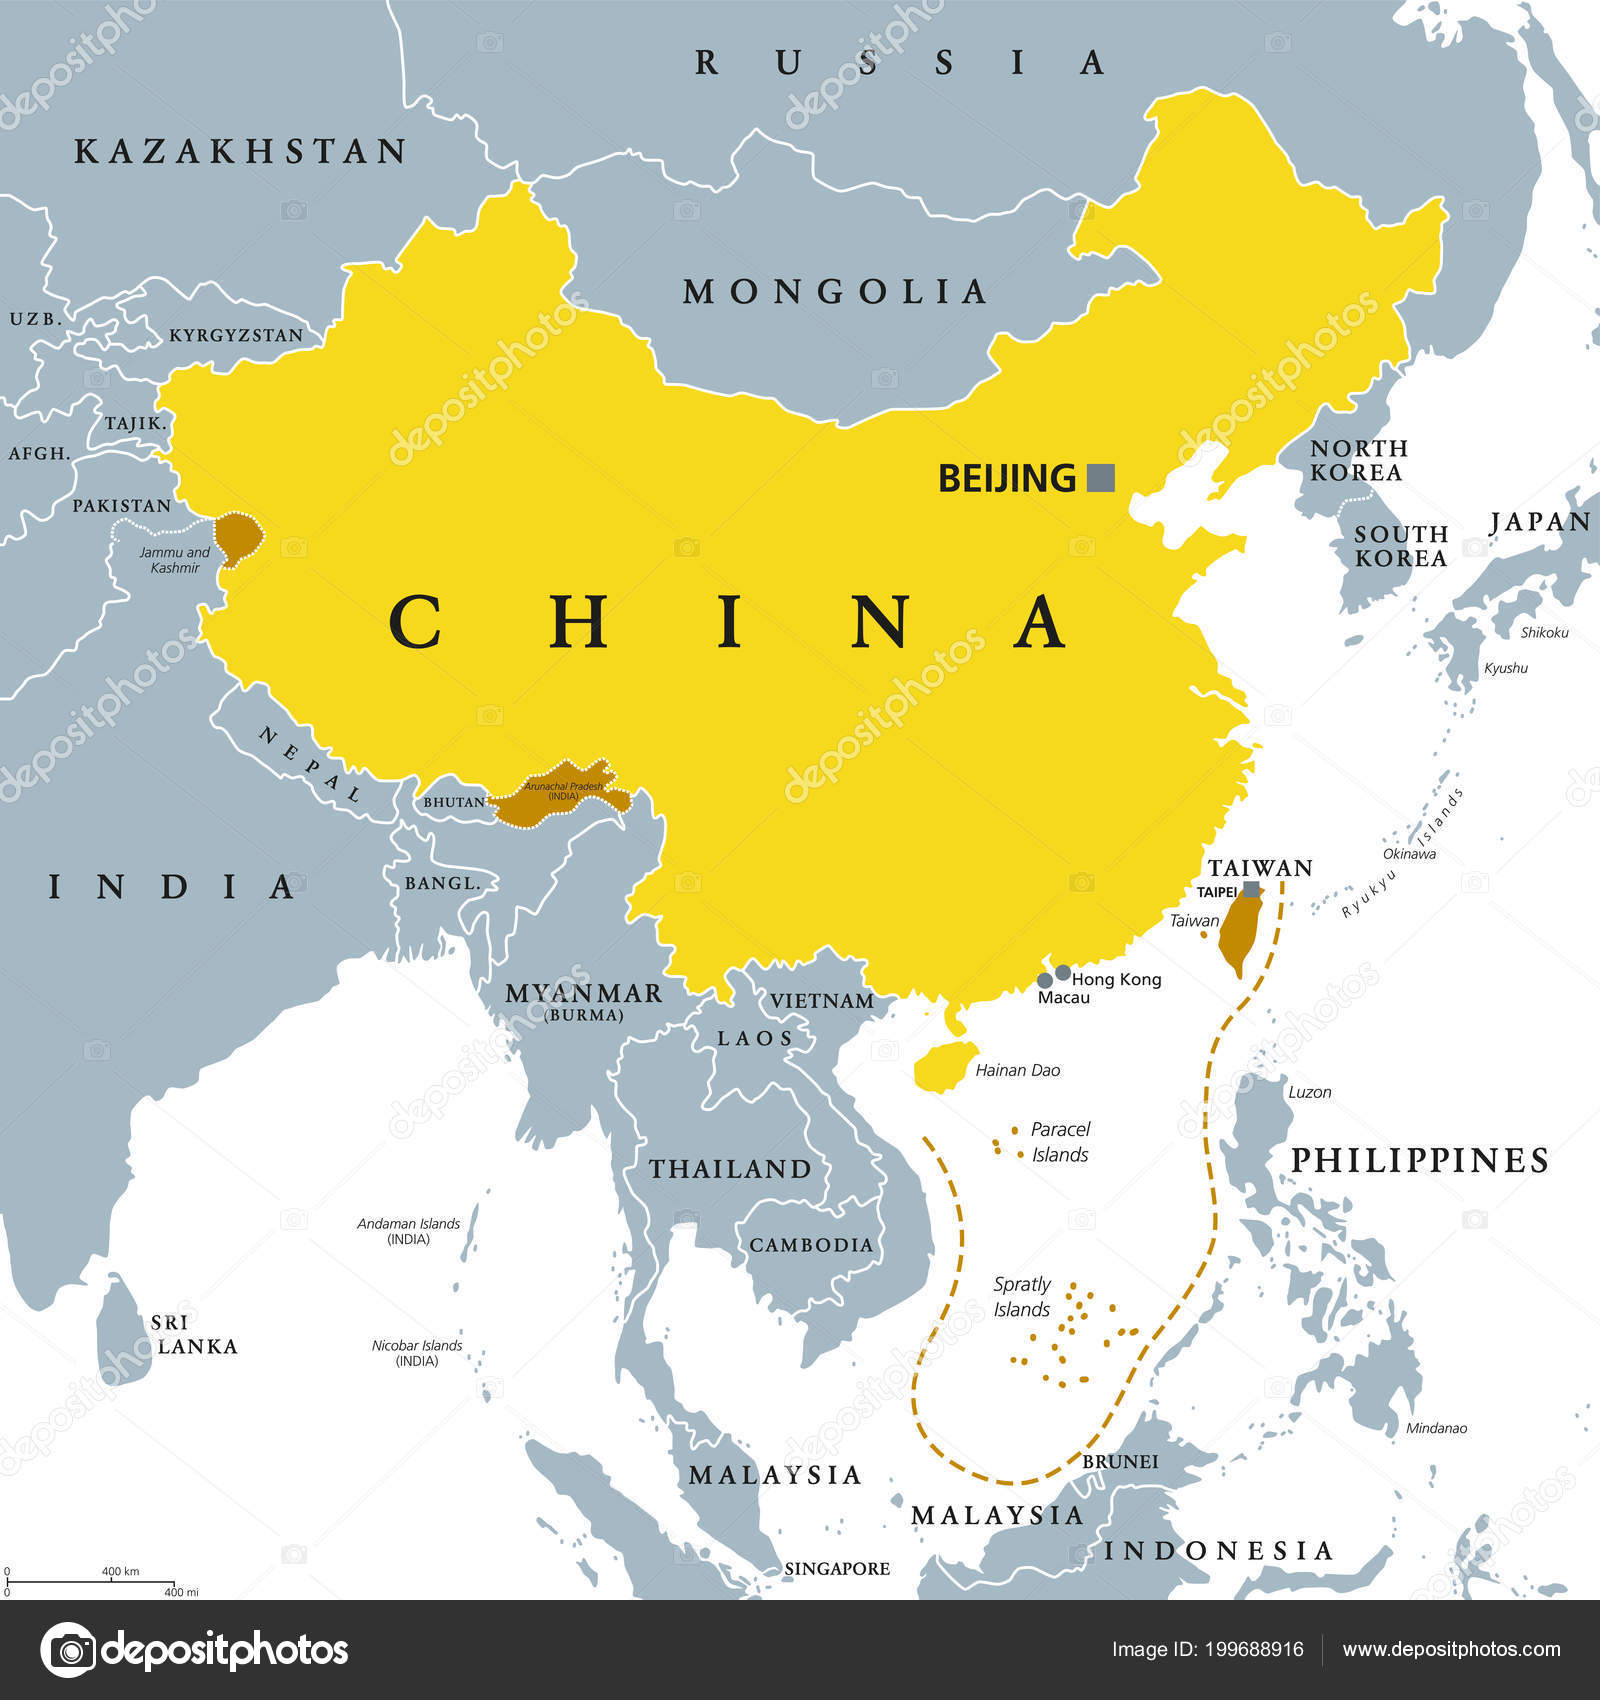 Peoples Republic China Prc Gray Political Map Area Controlled China